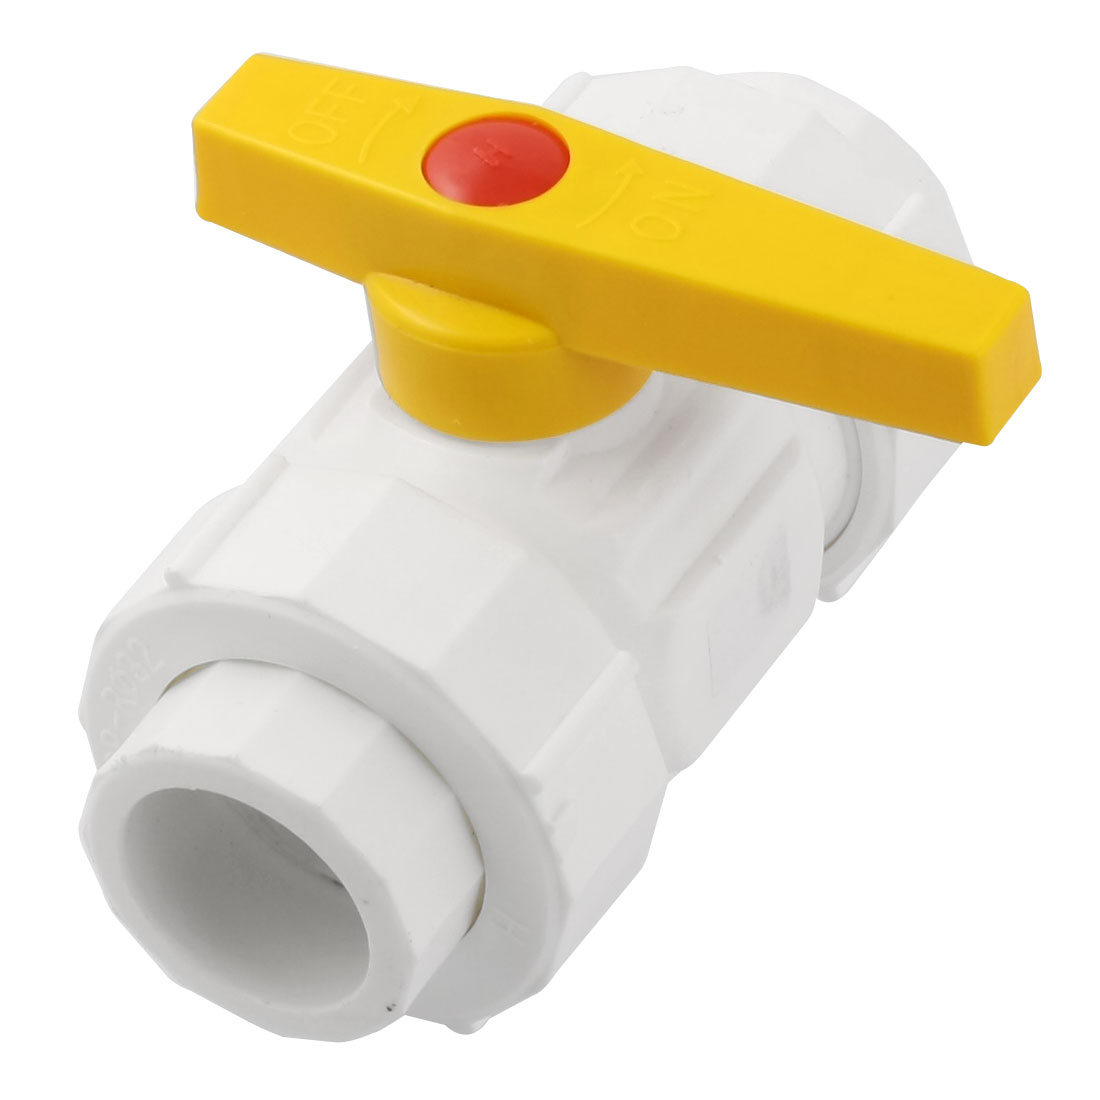 32mm to 32mm Ends Double Headed Union PPR Ball Valve White Yellow